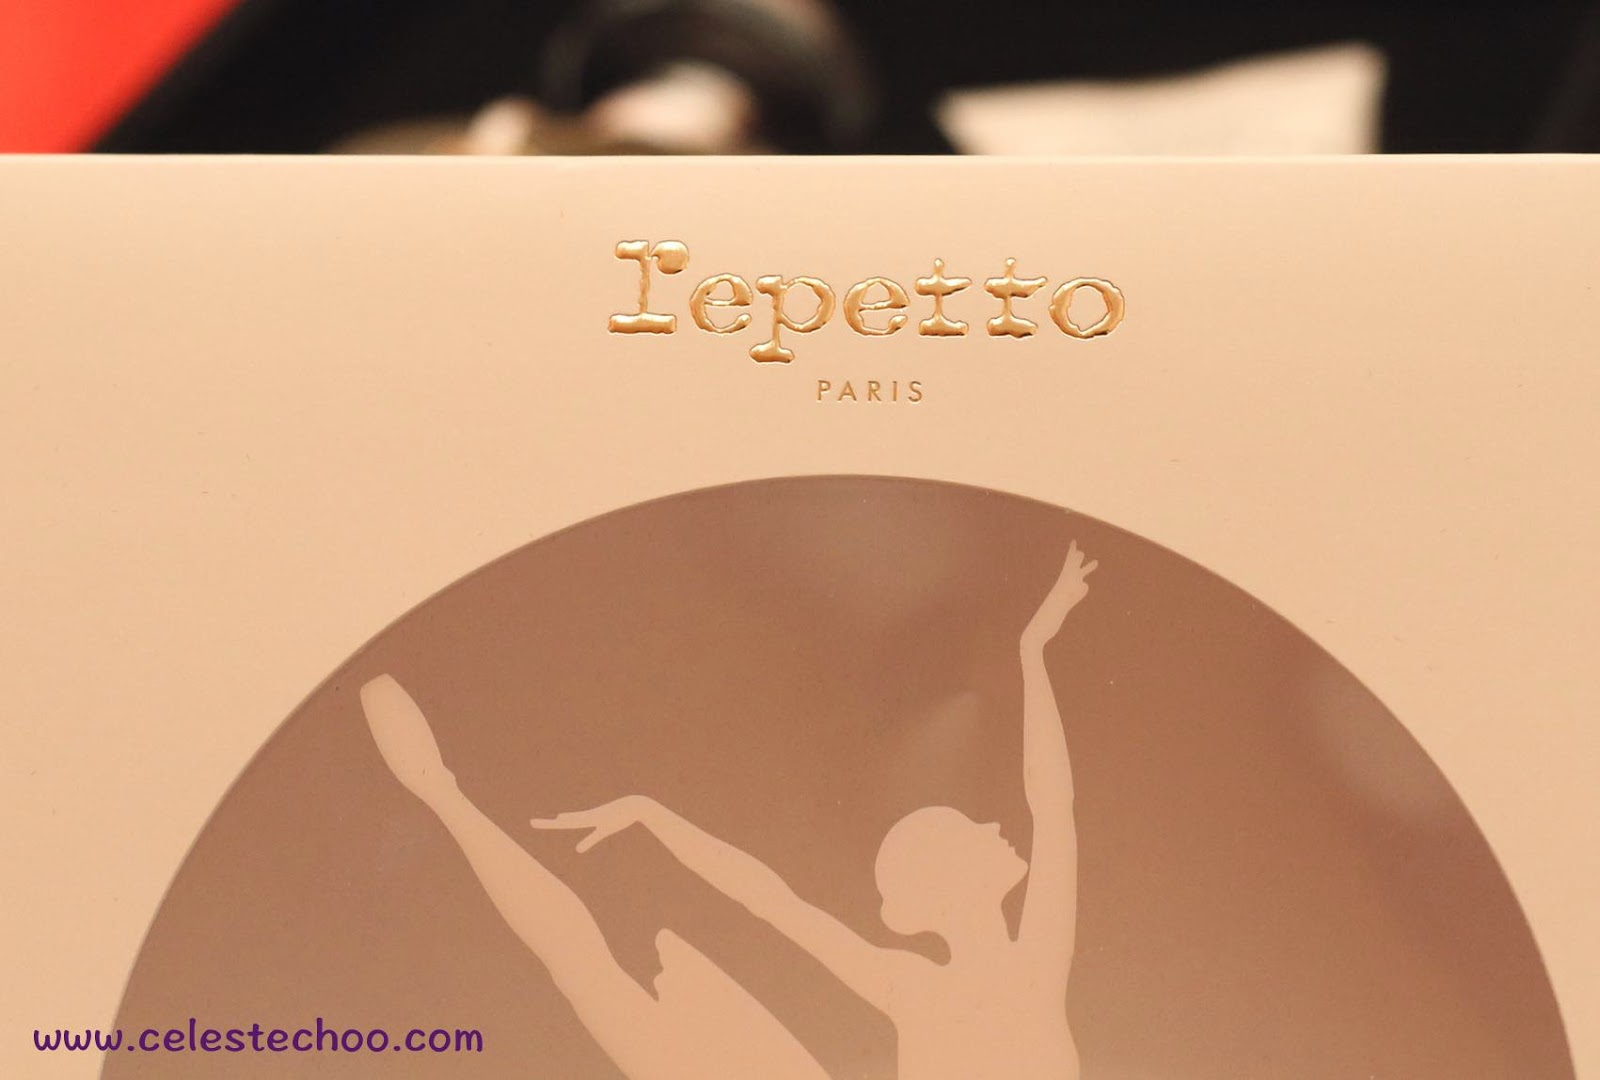 designer-fragrance-repetto-paris-perfume-and-lotion